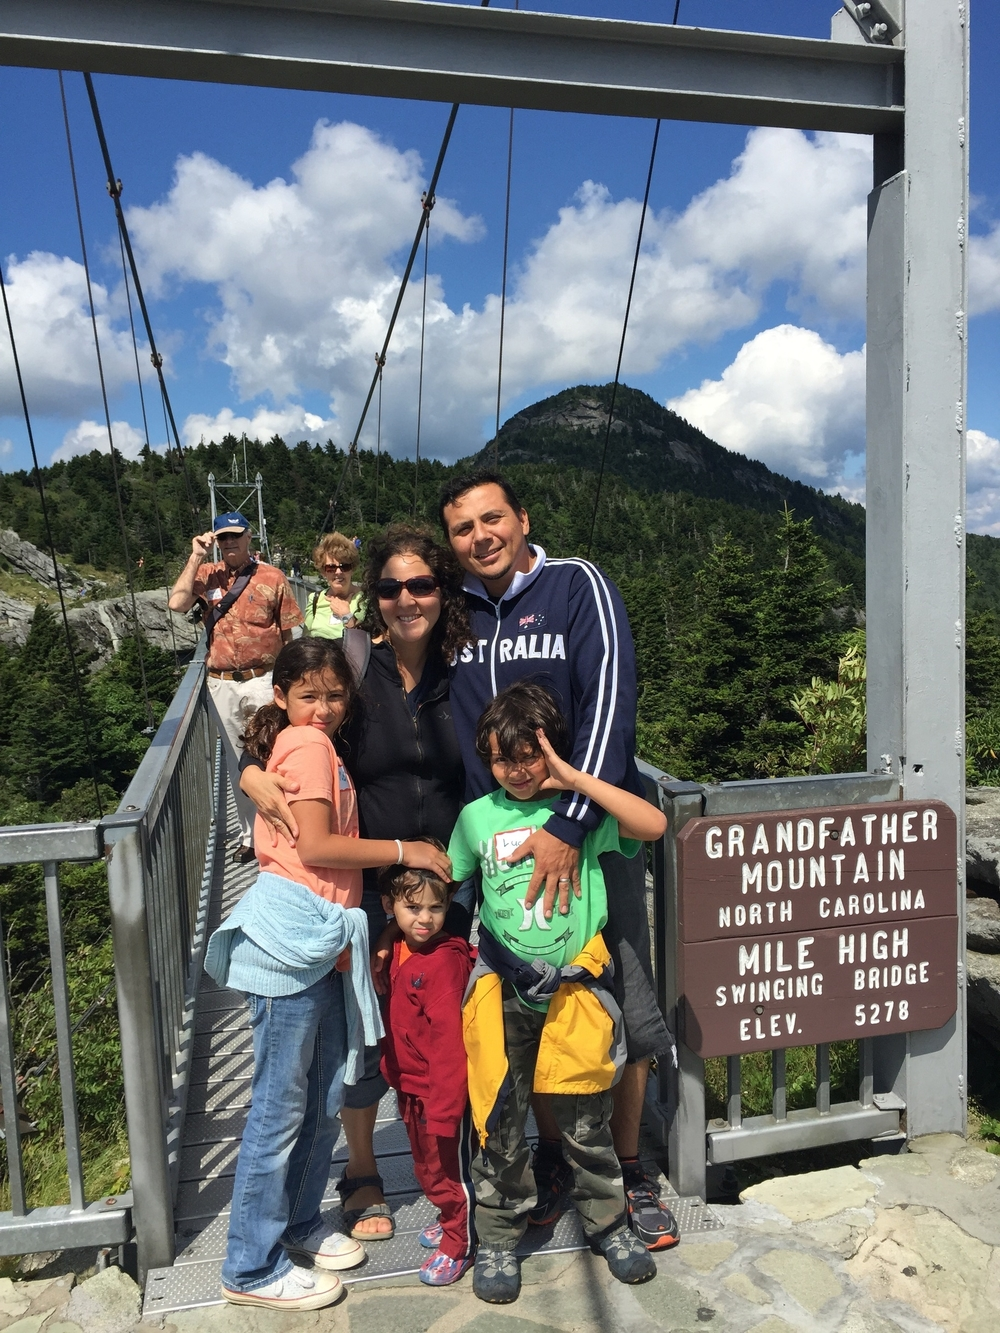 Iris and her family enjoy Grandfather Mountain.  She is joined by her husband, Edgar (serves with OCC International) and their children, Maia, Lucas and Noah Luciano.